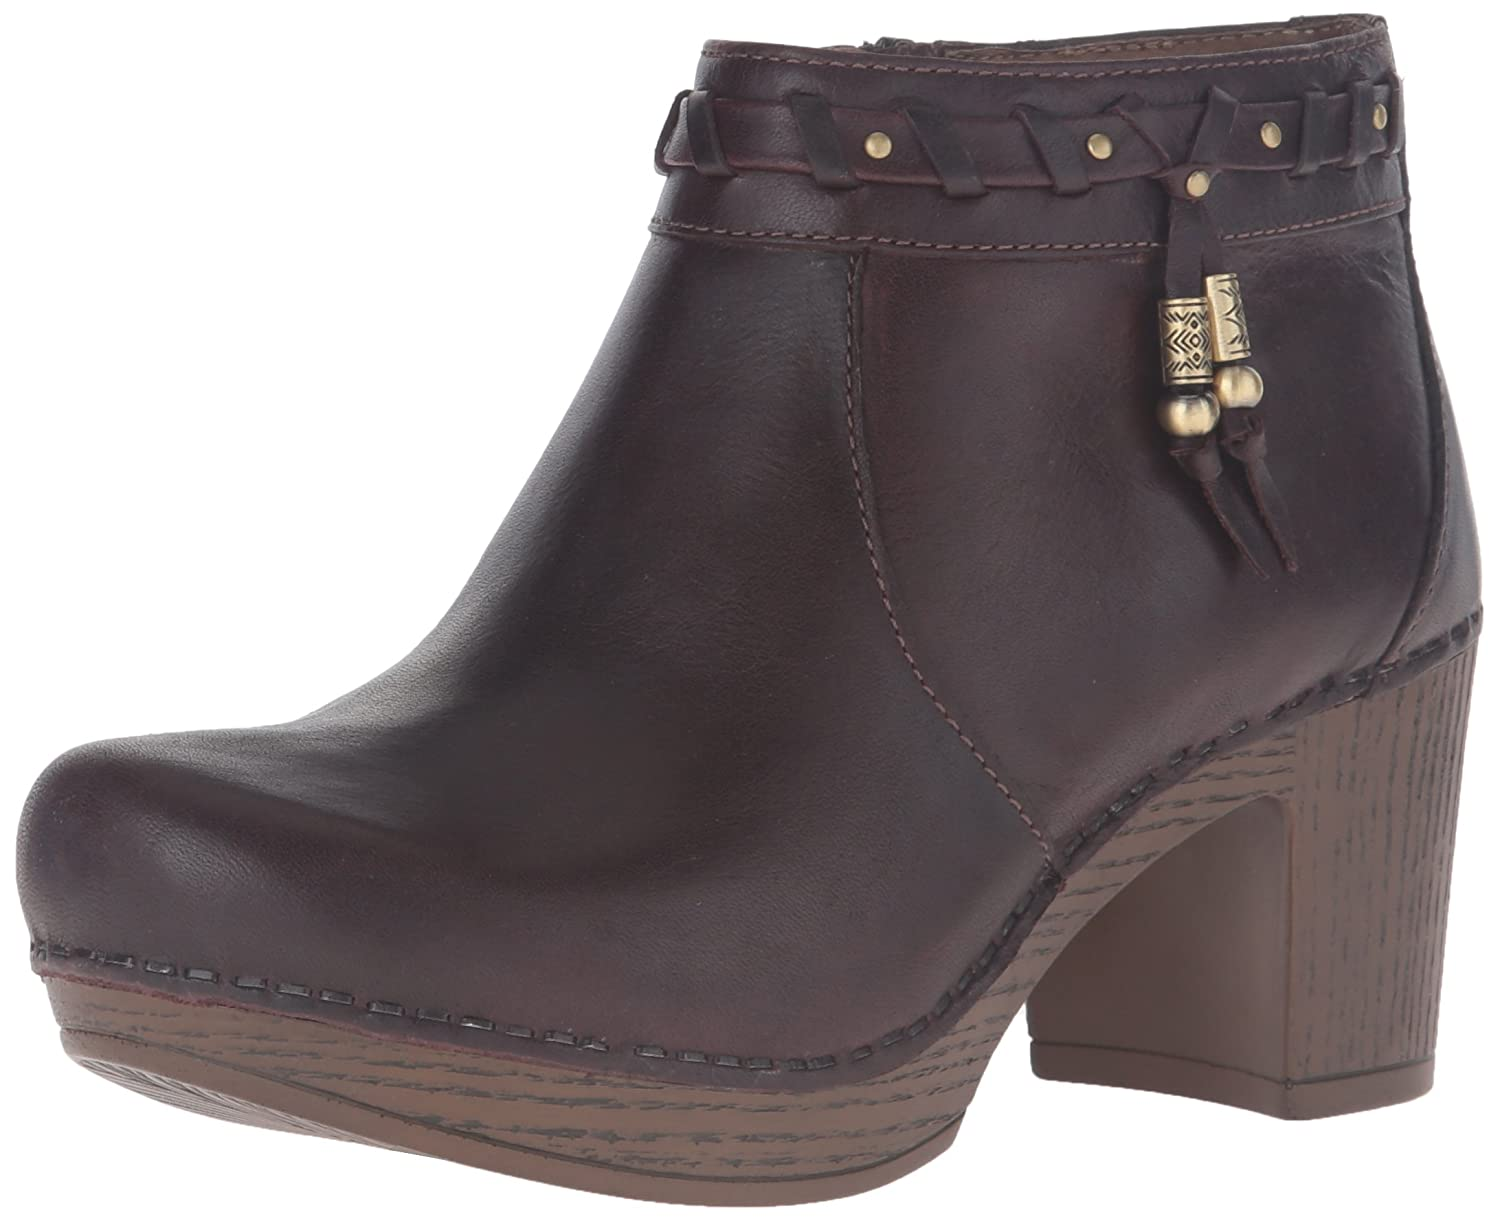 Dansko Women's Dabney Boot B019ZVU7CU 42 EU/11.5-12 M US|Chocolate Full Grain